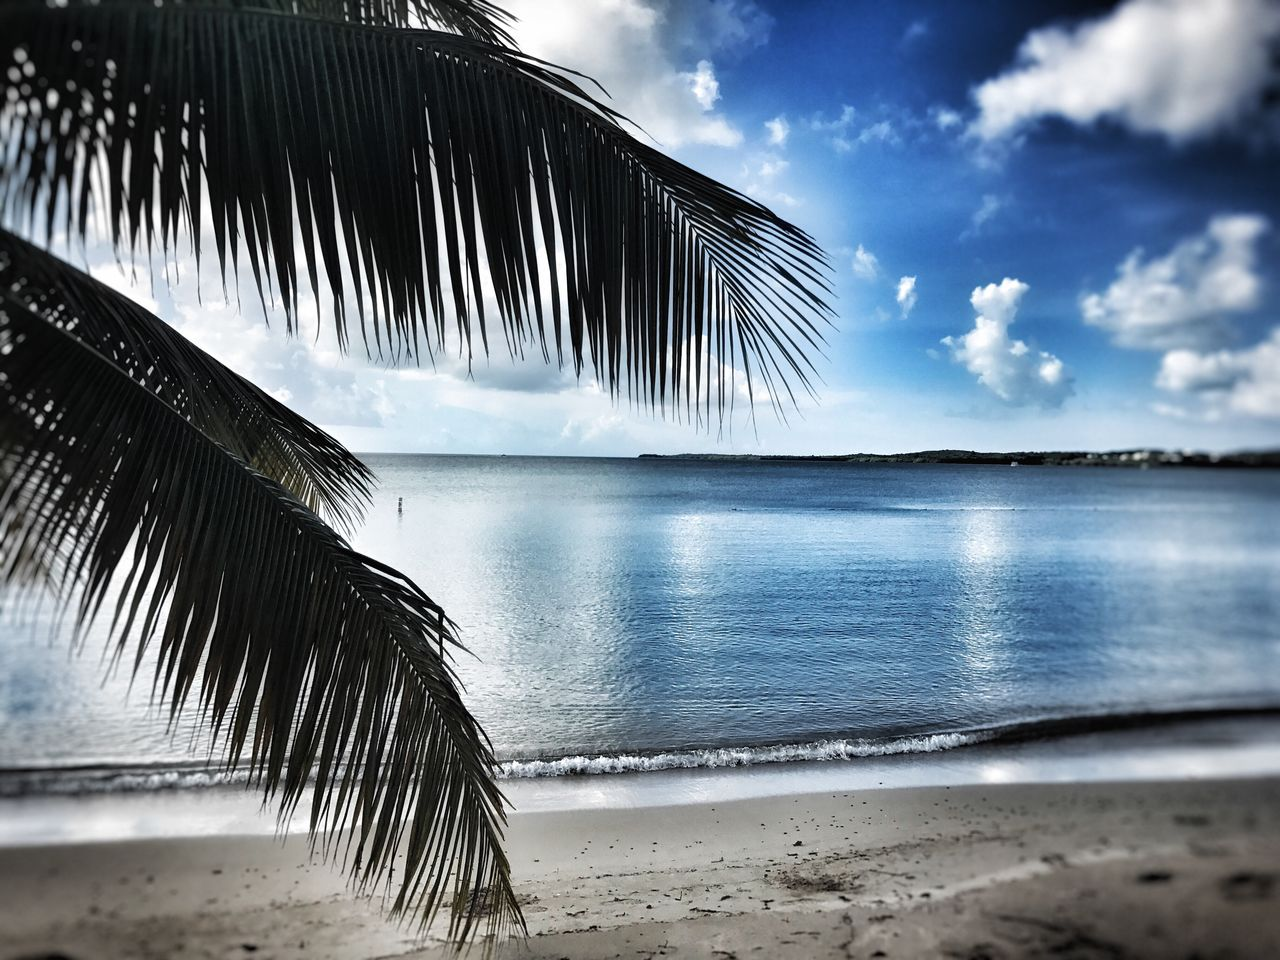 water, beach, sea, palm tree, nature, beauty in nature, scenics, sand, sky, tranquility, outdoors, no people, horizon over water, day